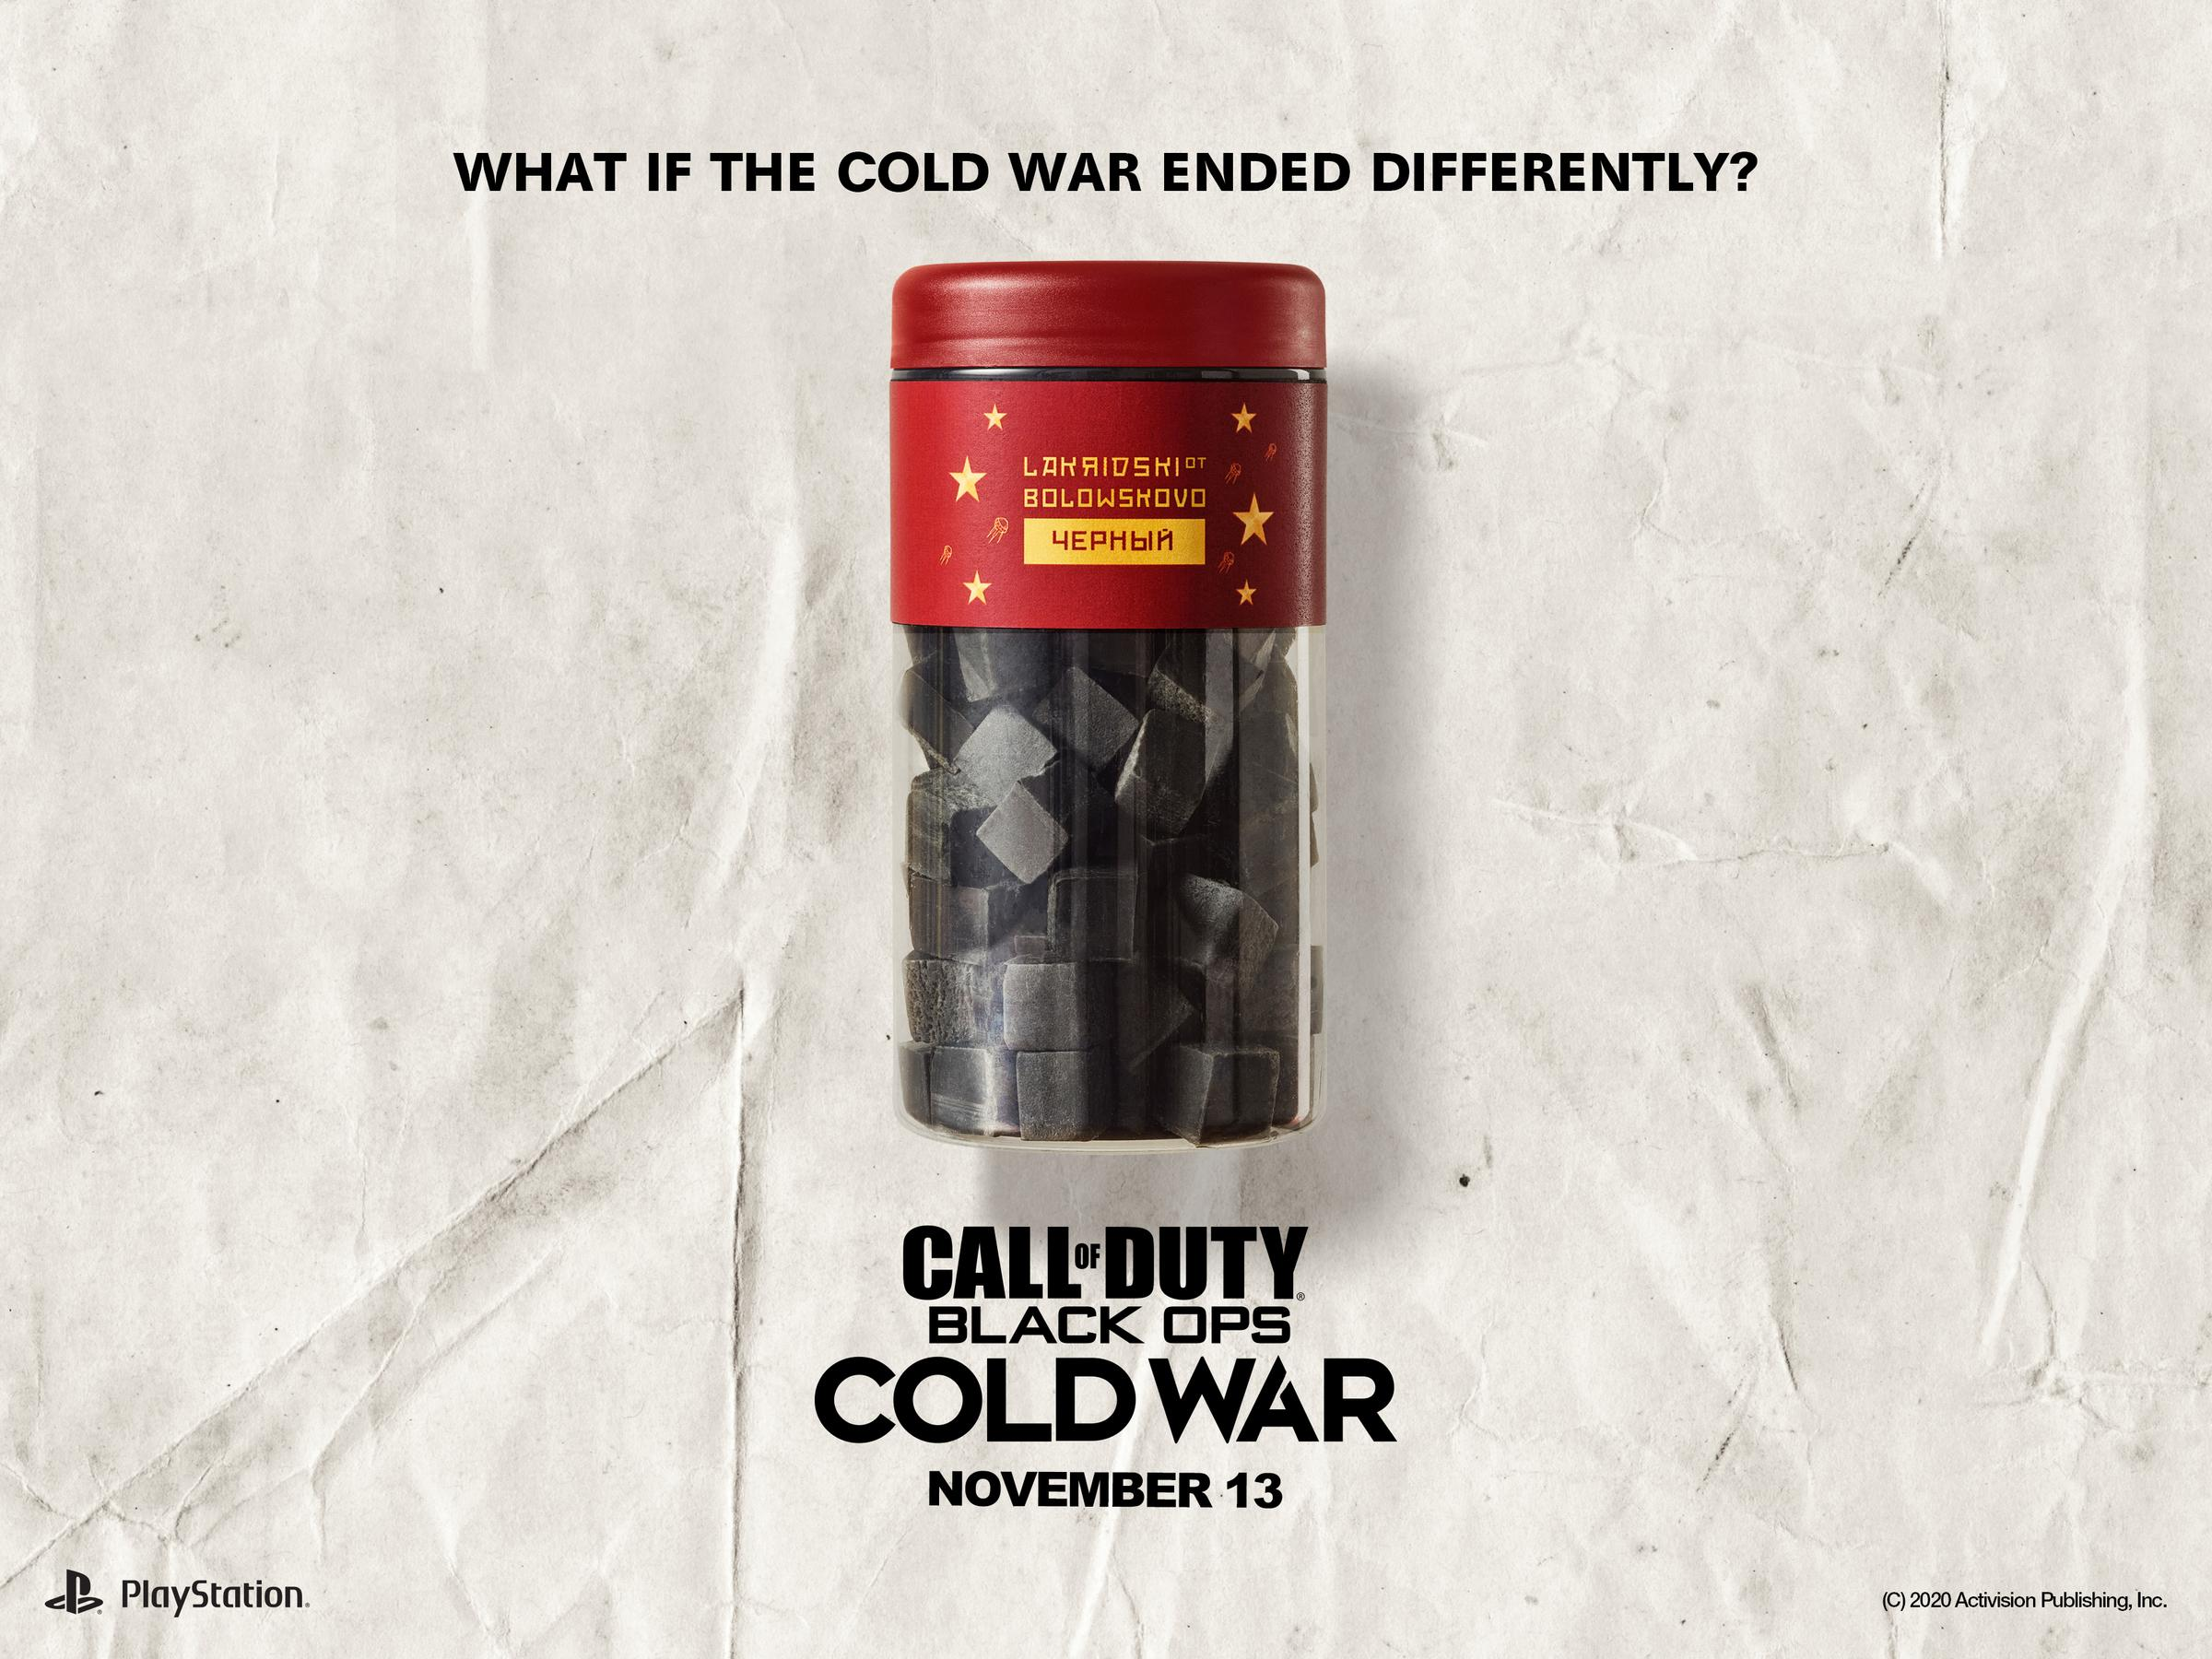 Activision / Call of Duty: What if the Cold War ended differently?